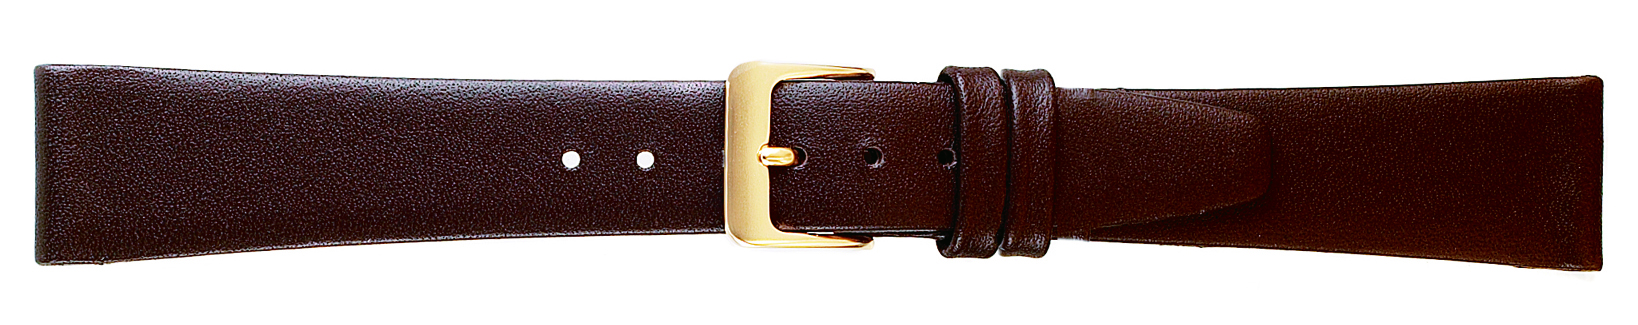 16MM Leather Band Brown Smooth Calf-0